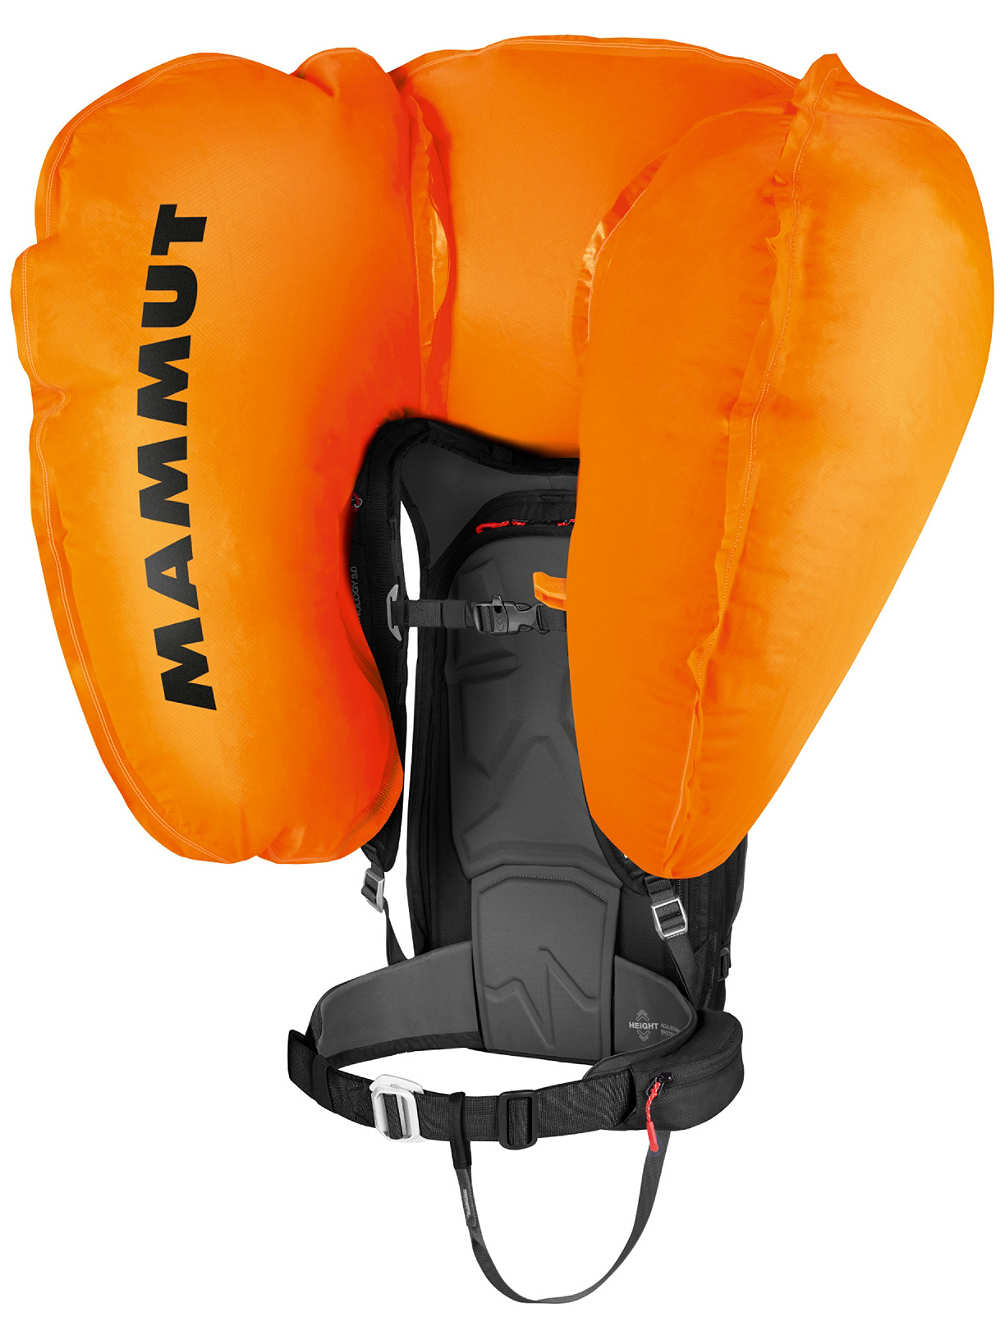 Pro+Protection+Airbag+3+0+35L+Backpack (2).jpg